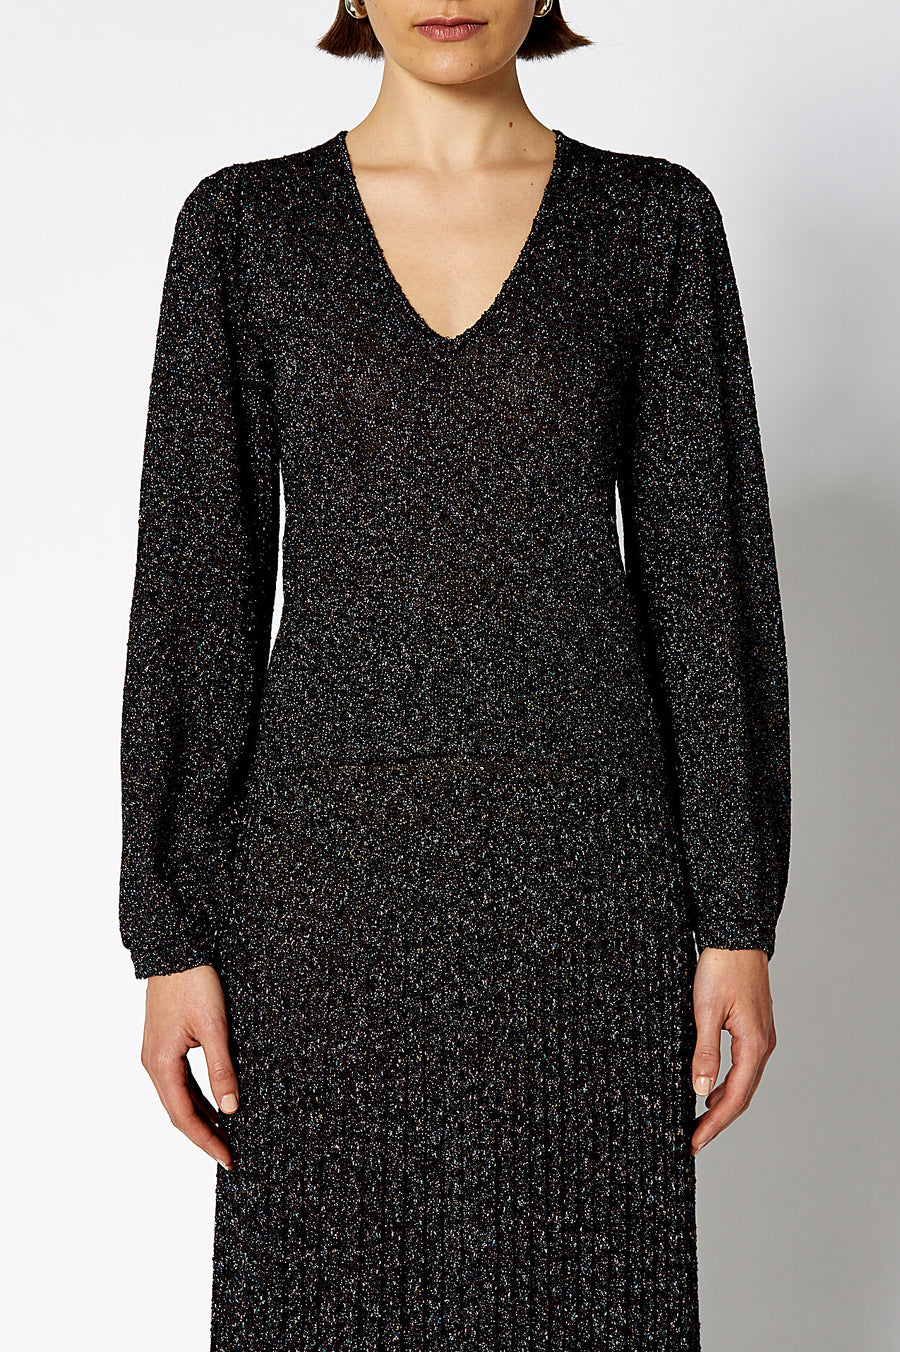 The Calypso Tinsel V Neck Sweater in Black is designed for a regular fit, color black